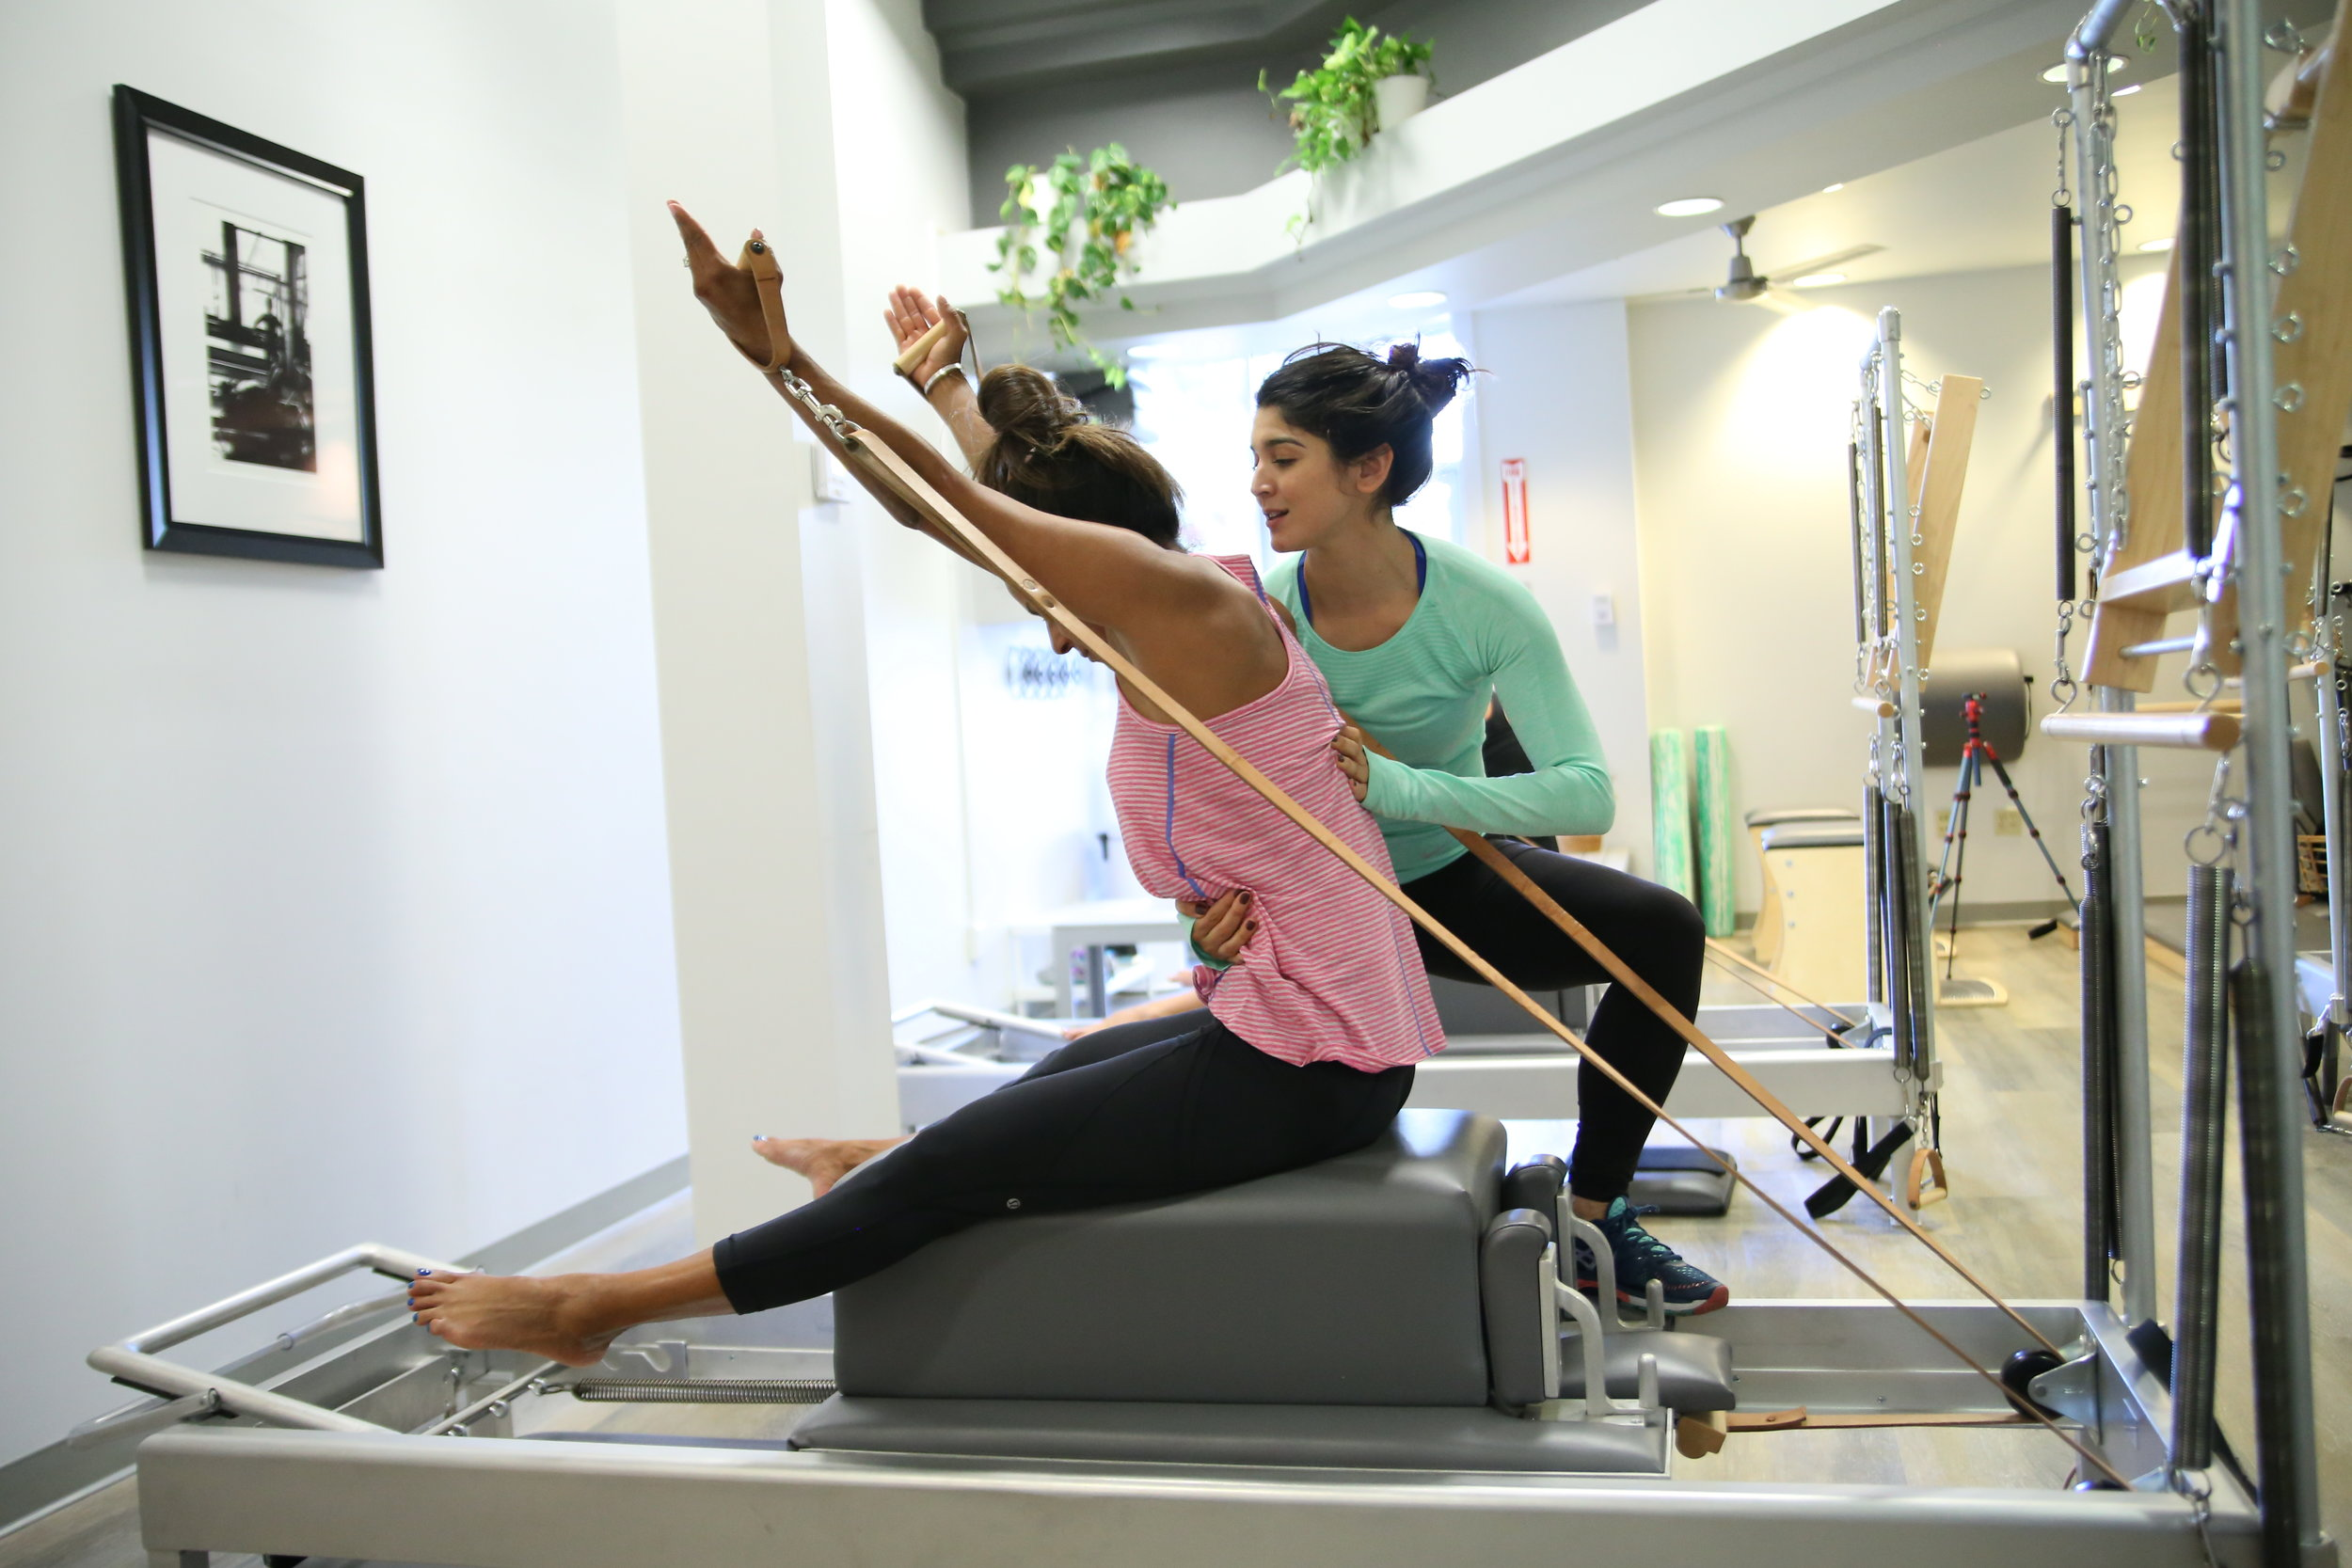 PRIVATE/ SEMI-PRIVATE SESSIONS - Experience Pilates as the system it was designed to be. Utilizing all pieces of Pilates equipment, Each 55-minute session is tailored specifically for the client to address personal fitness goals, retrain after an injury, or build a deeper knowledge of  the Classical Pilates Method.